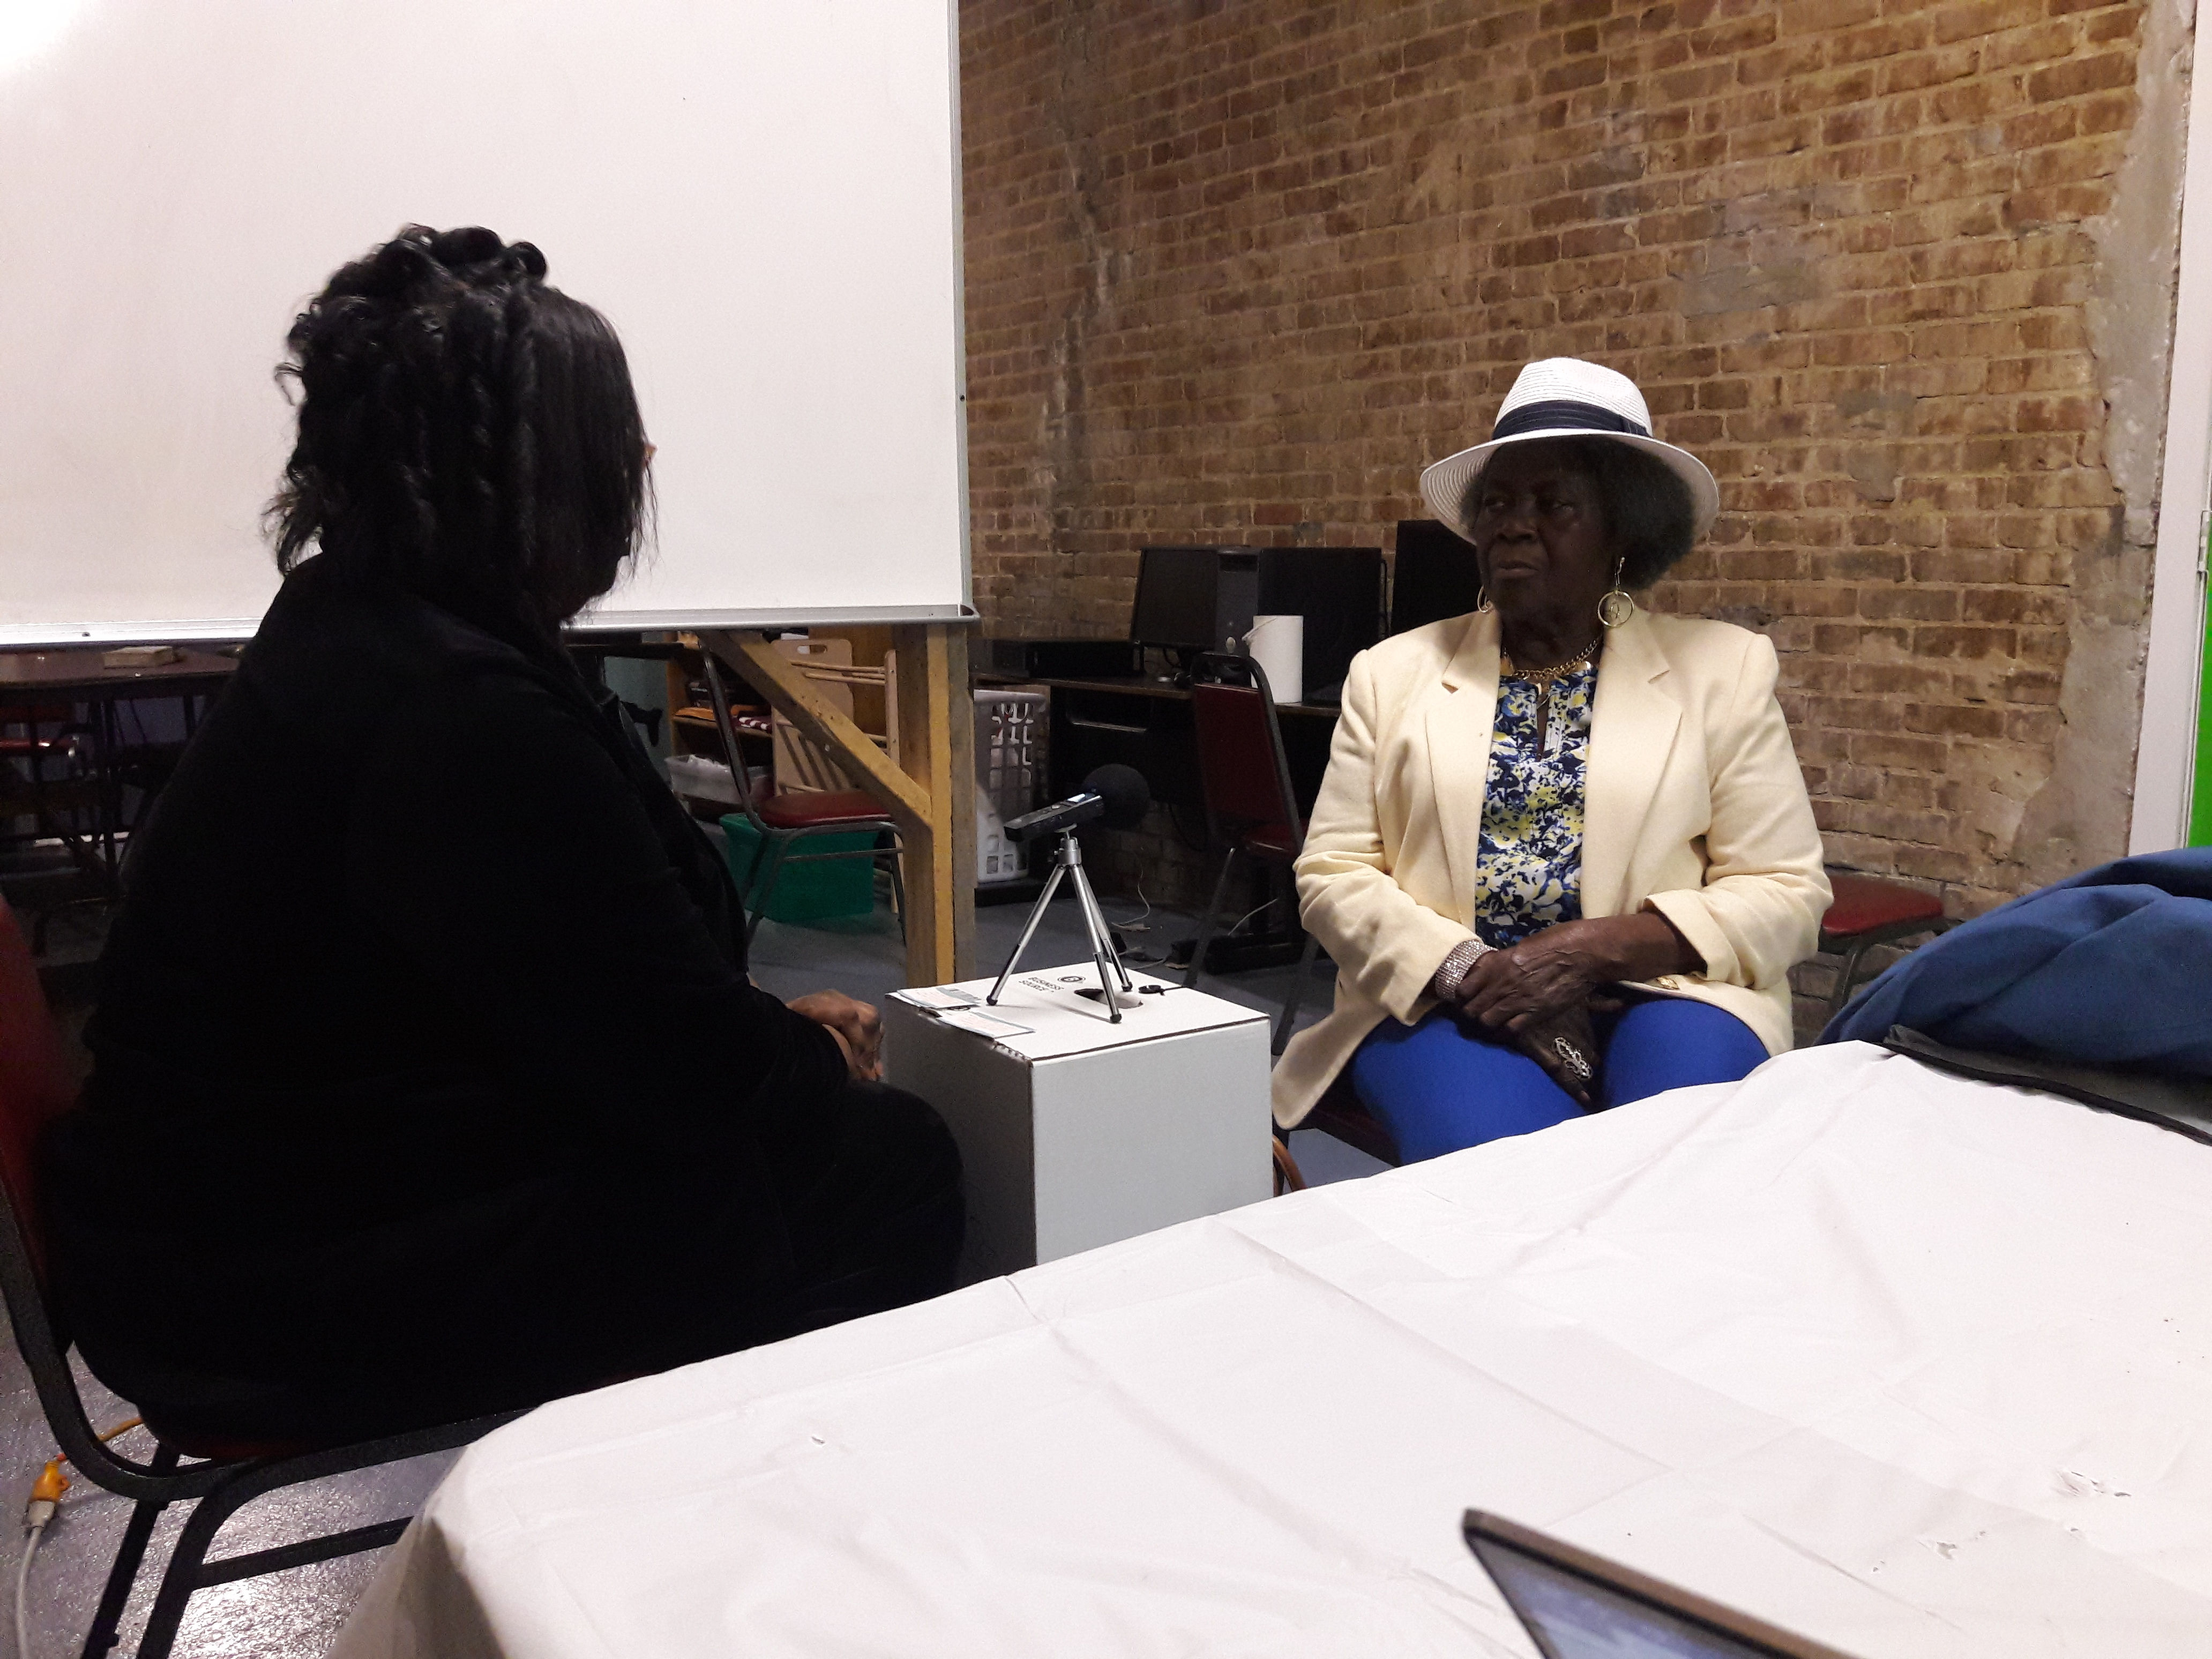 Two African-American women-presenting people seated, talking with an audio recorder on a tripod between them.